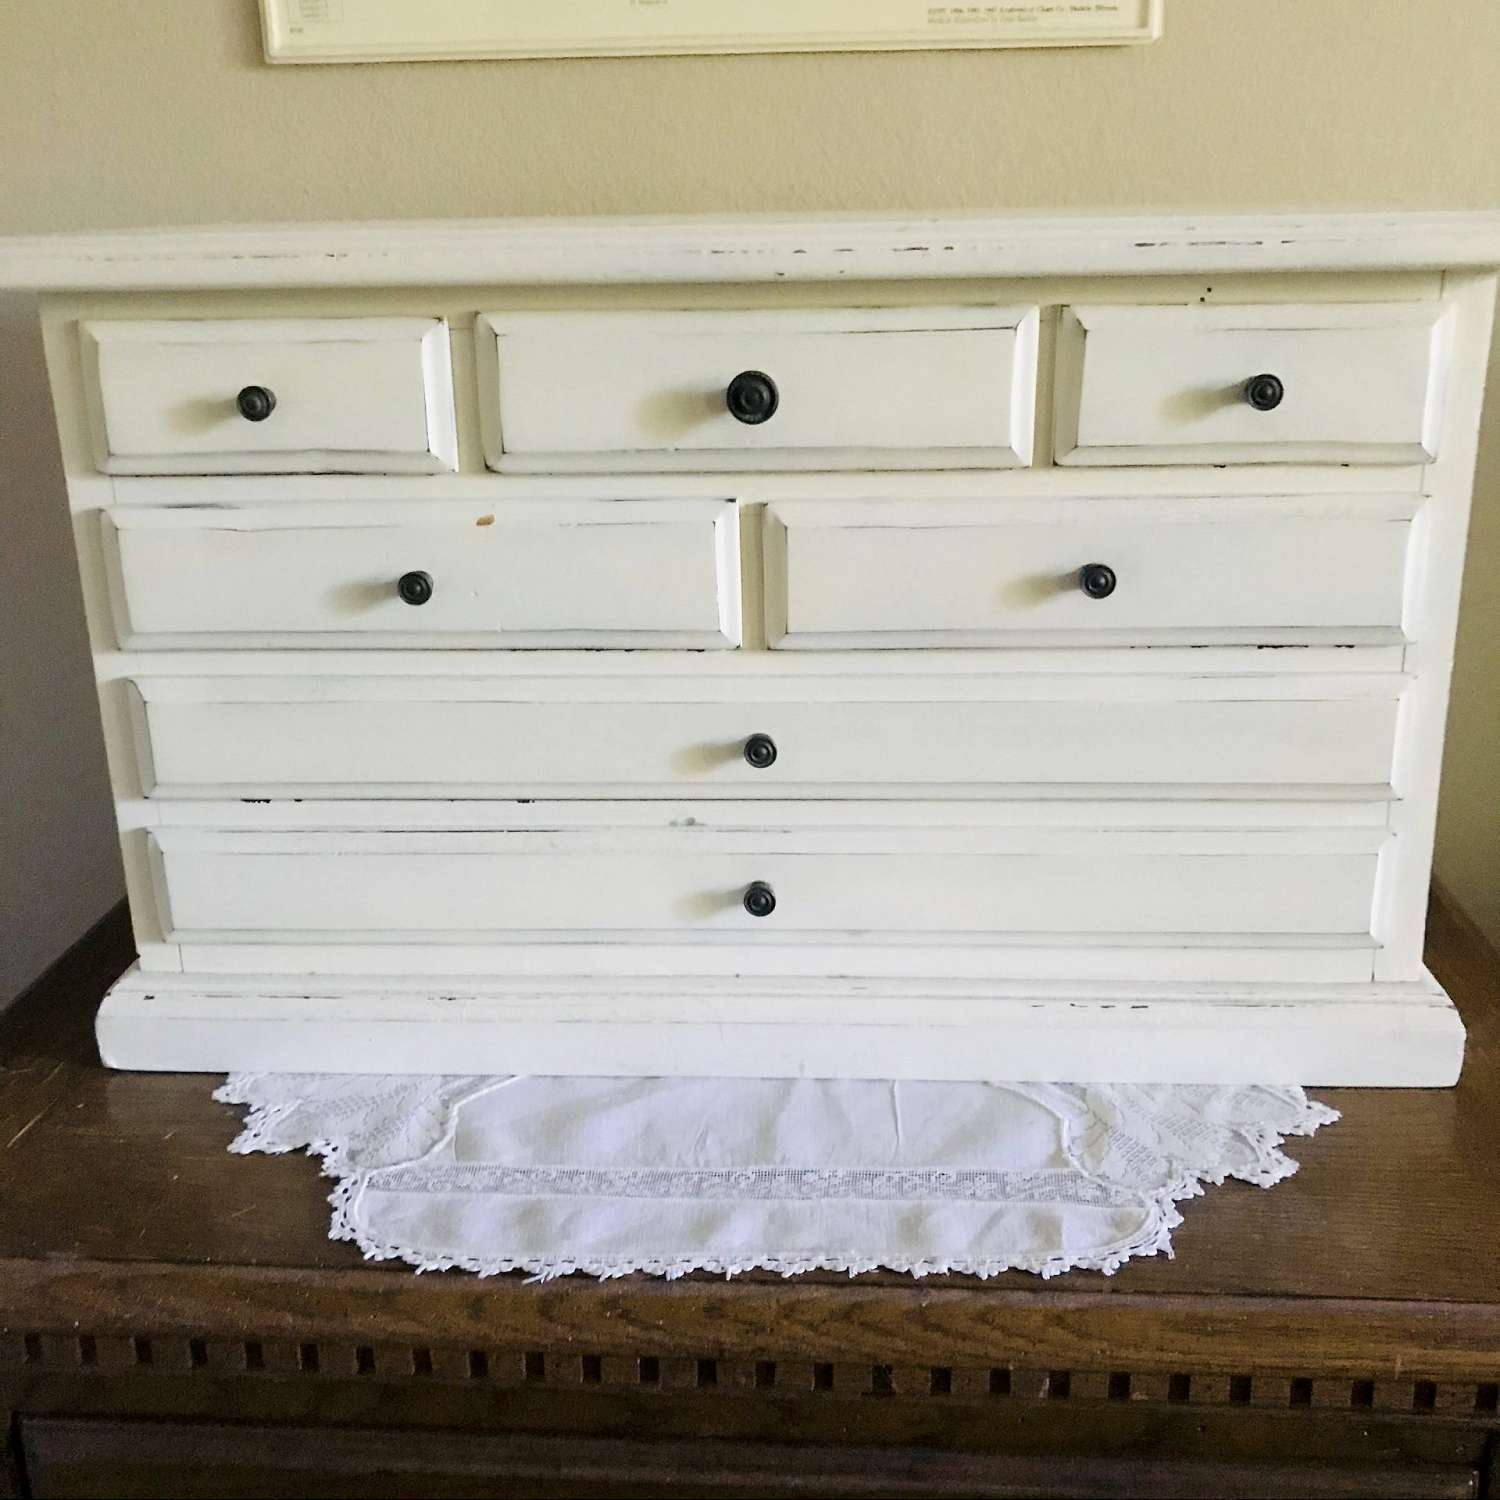 Antique 7 Drawer Wooden Storage Box Dresser Box Jewelry Collectible Trinkets Display Bedroom Office Farmhouse Shabby Chic Cottage Carol S True Vintage And Antiques